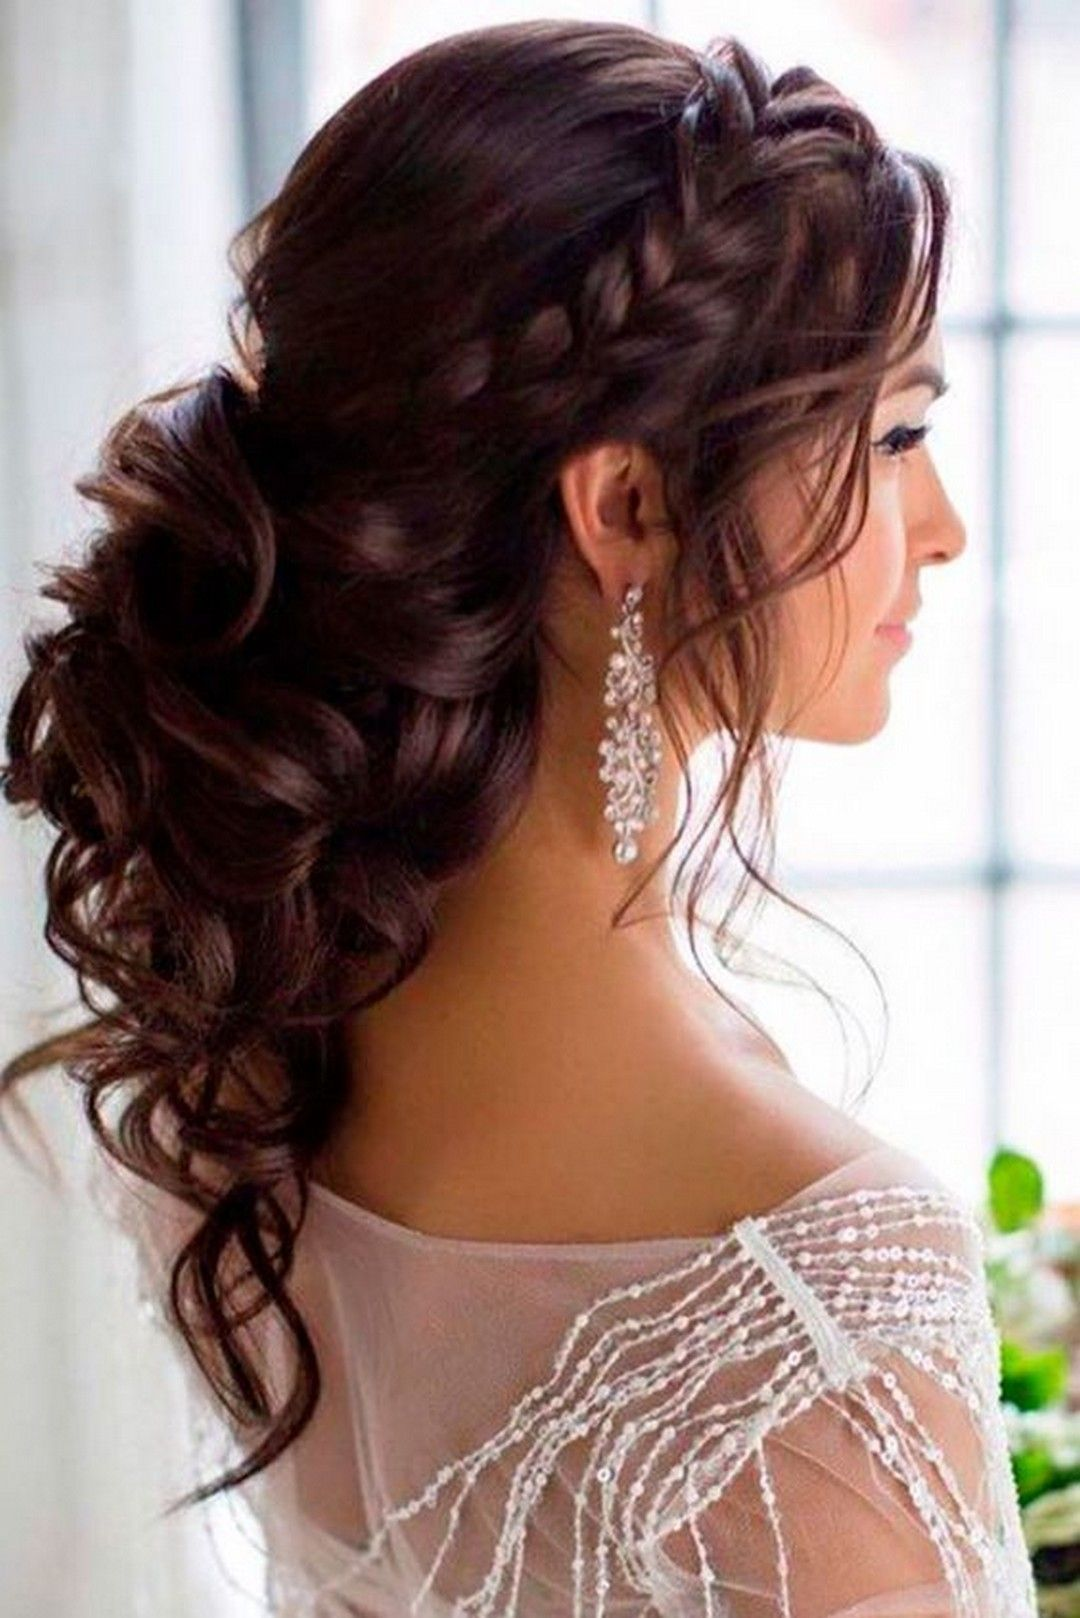 65 Long Bridesmaid Hair And Bridal Hairstyles For Wedding Torrent Downloads Download Free Torrents Long Hair Updo Hair Styles Wedding Hair And Makeup